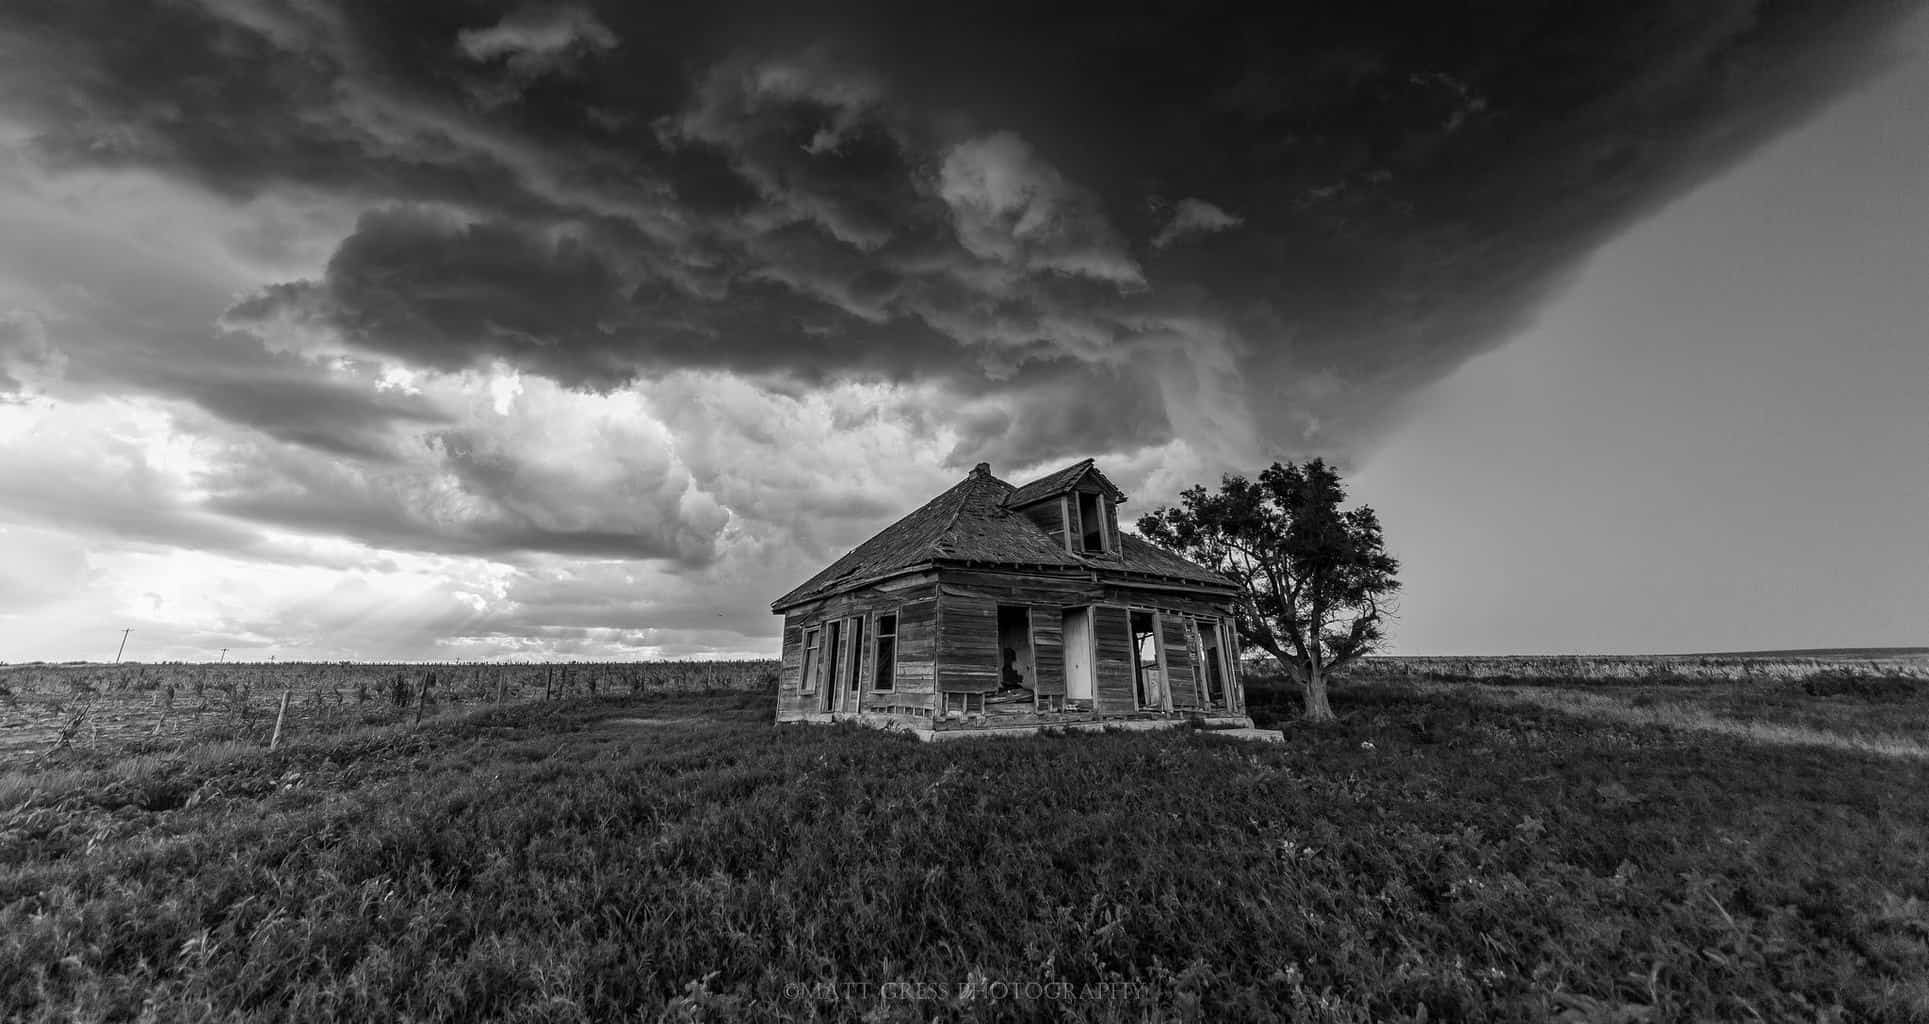 This photo was taken near the McCook, NE area. One of my favorite black and white photos that I have taken. I have always wondered what it would have been like to have lived in rural Nebraska many years ago. Surviving off the land with no electricity, plumbing or any of the necessities that we are so used to having today. Riding out severe weather was probably not as enjoyable as we see it either! July 10th 2015 on a marginal day.